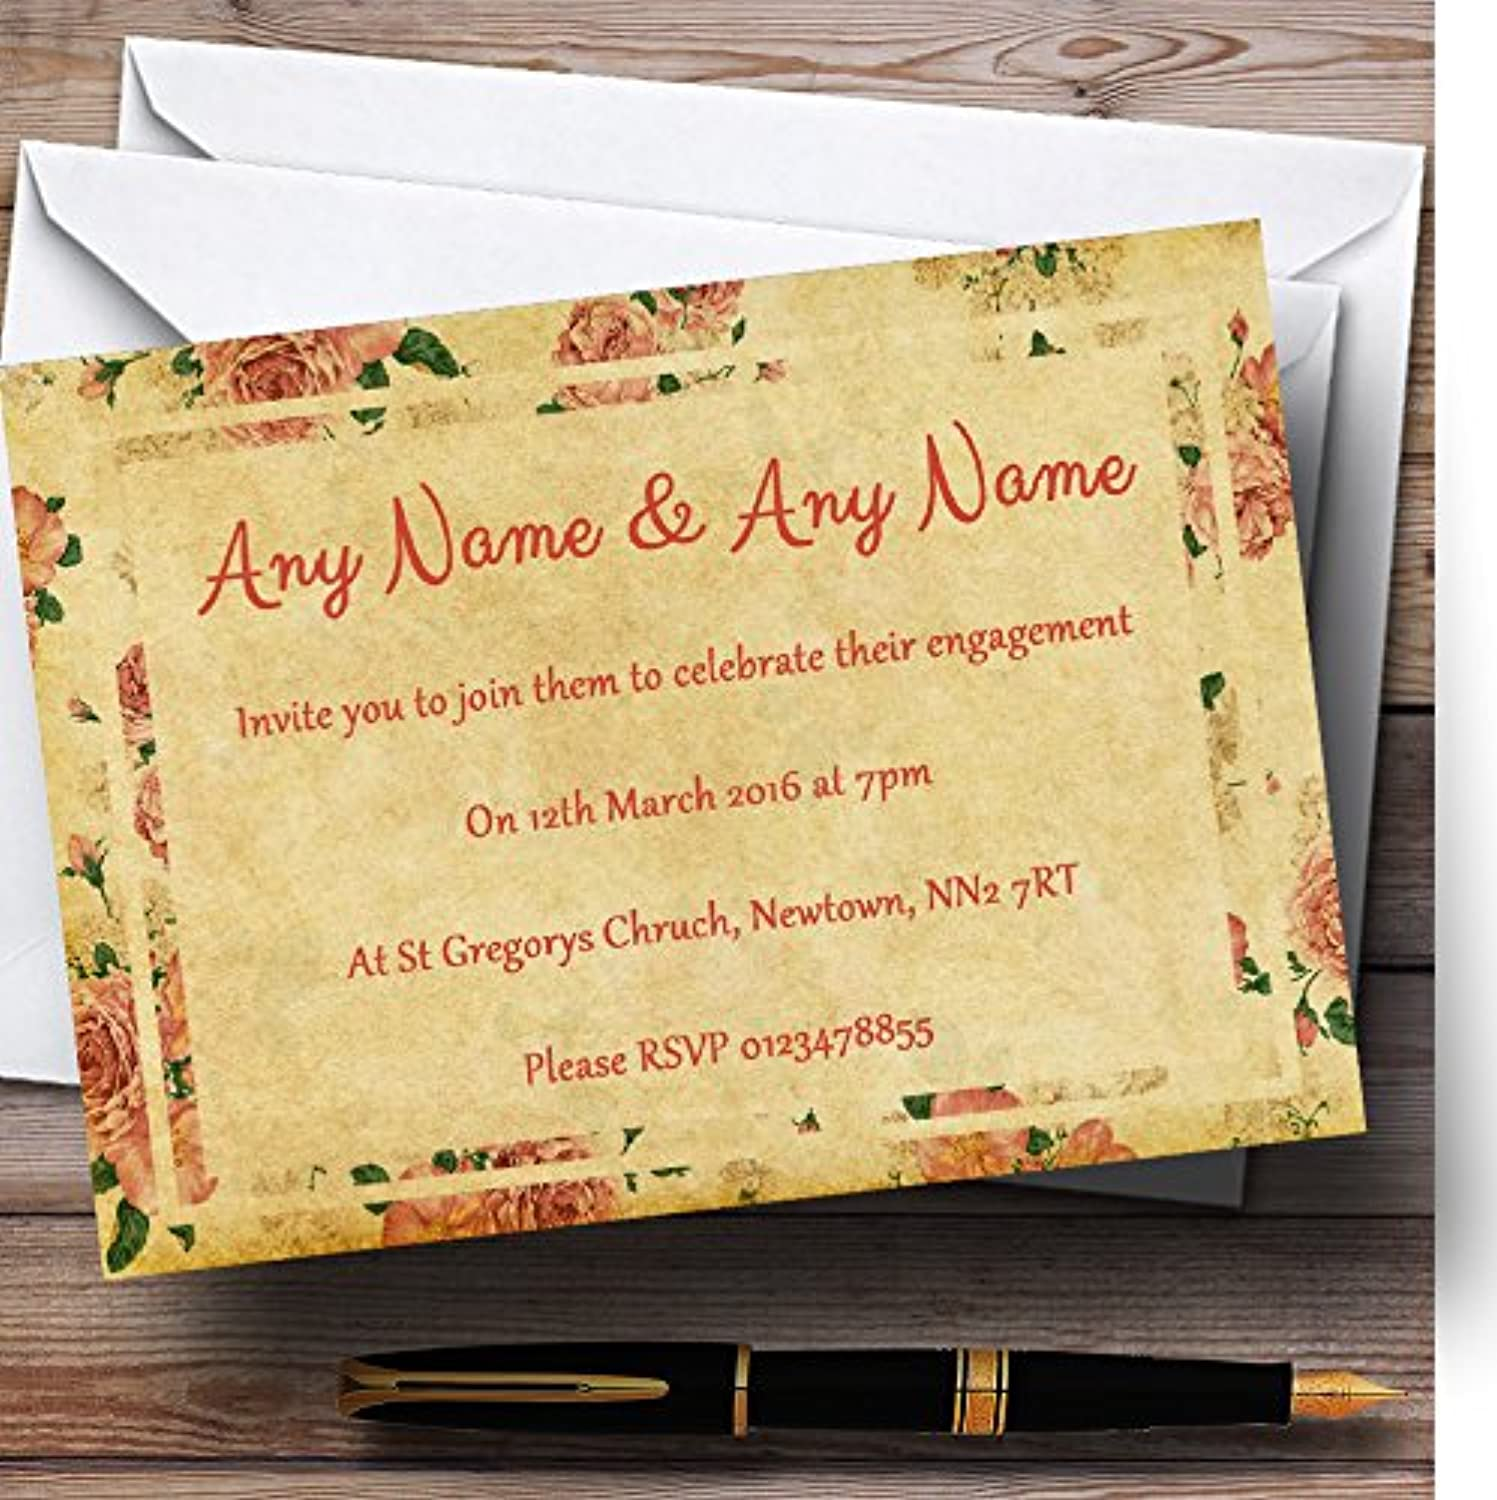 Vintage Pink pinks Postcard Style Personalised Engagement Party Invitations   Invites & Envelopes